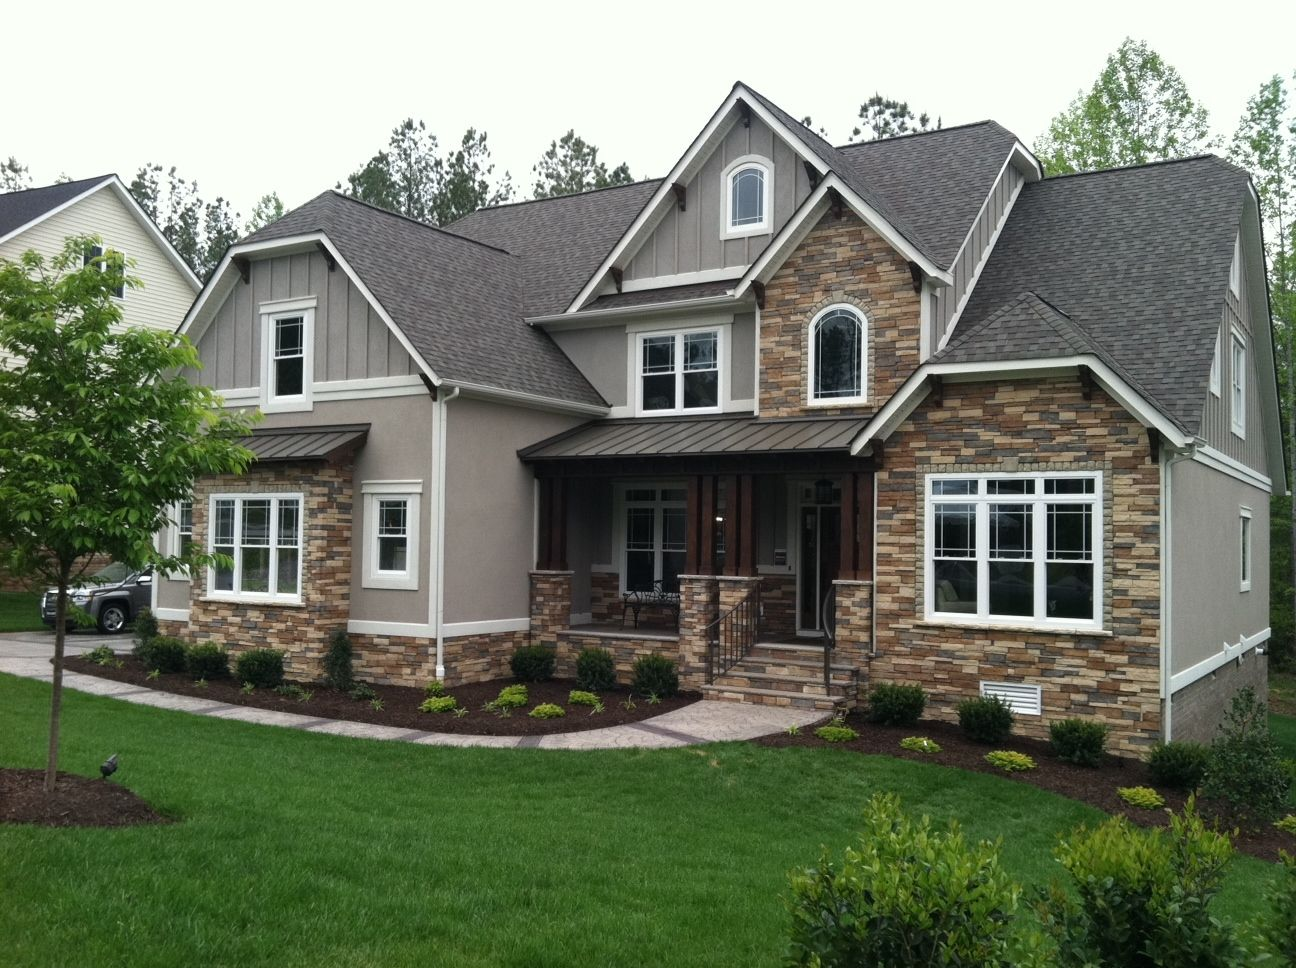 17 best images about house exterior stone on pinterest craftsman blue houses and stone columns - Exterior Siding Design Ideas